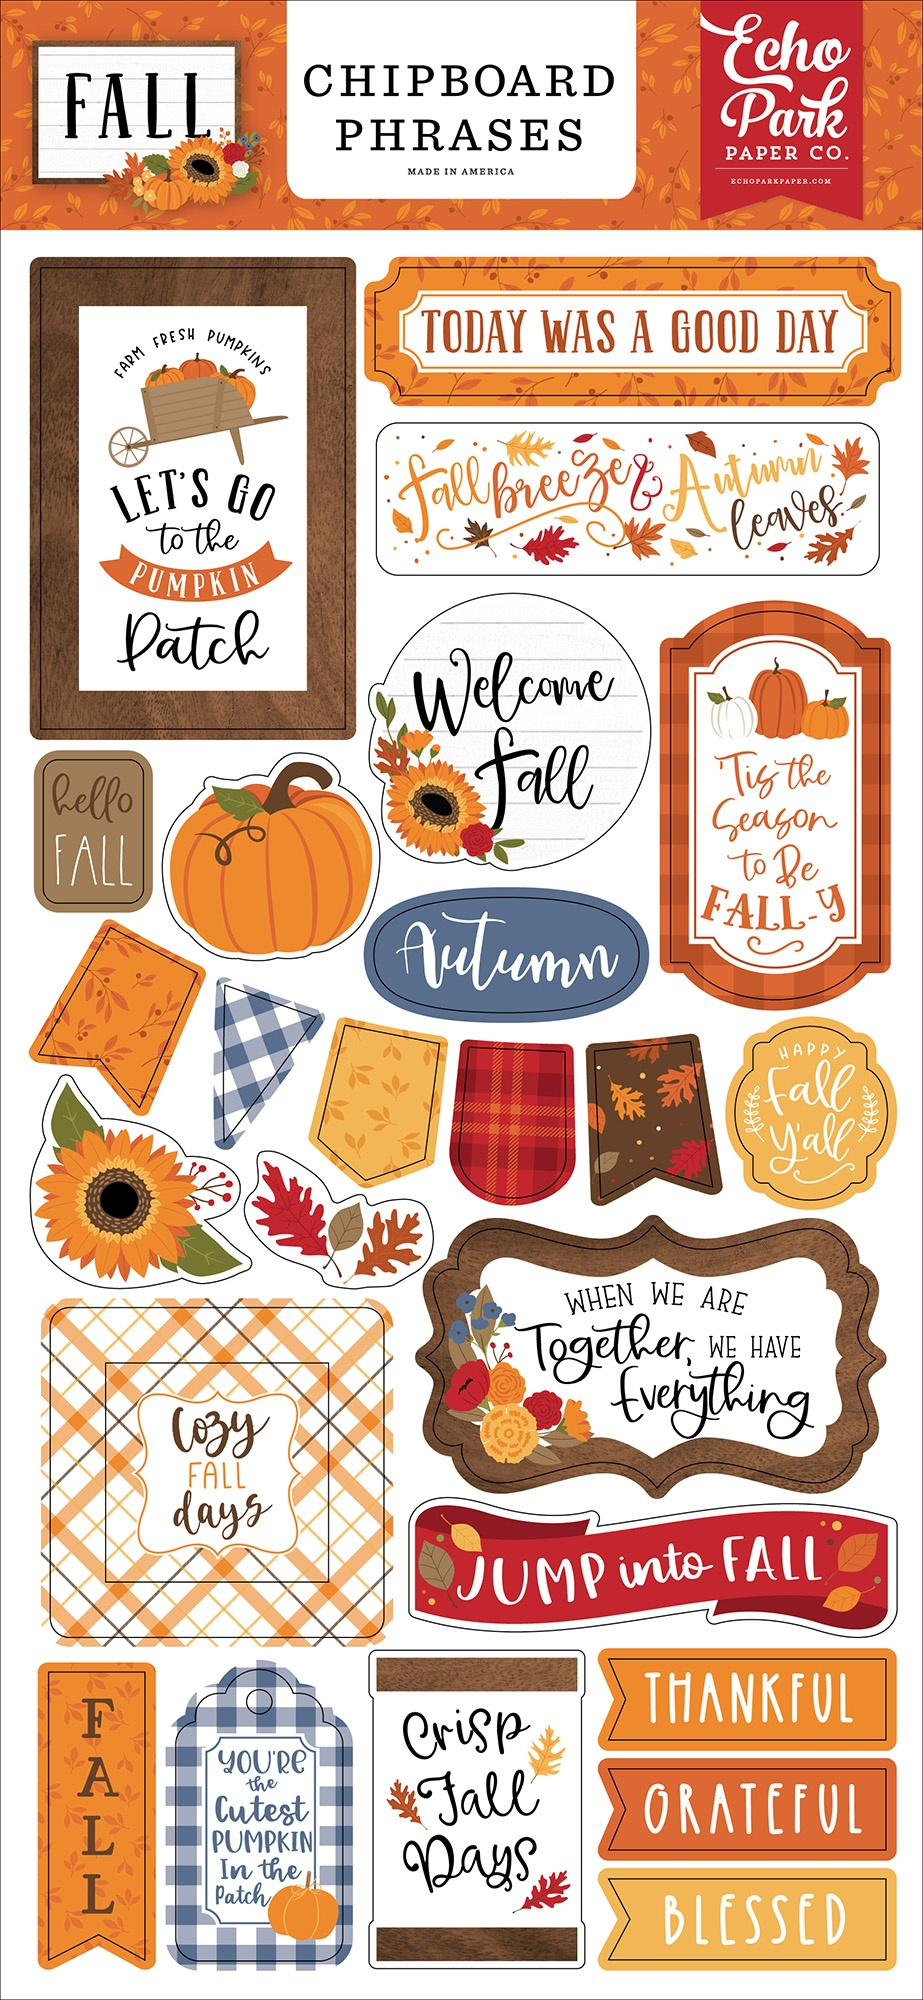 Fall Chipboard 6X13-Phrases